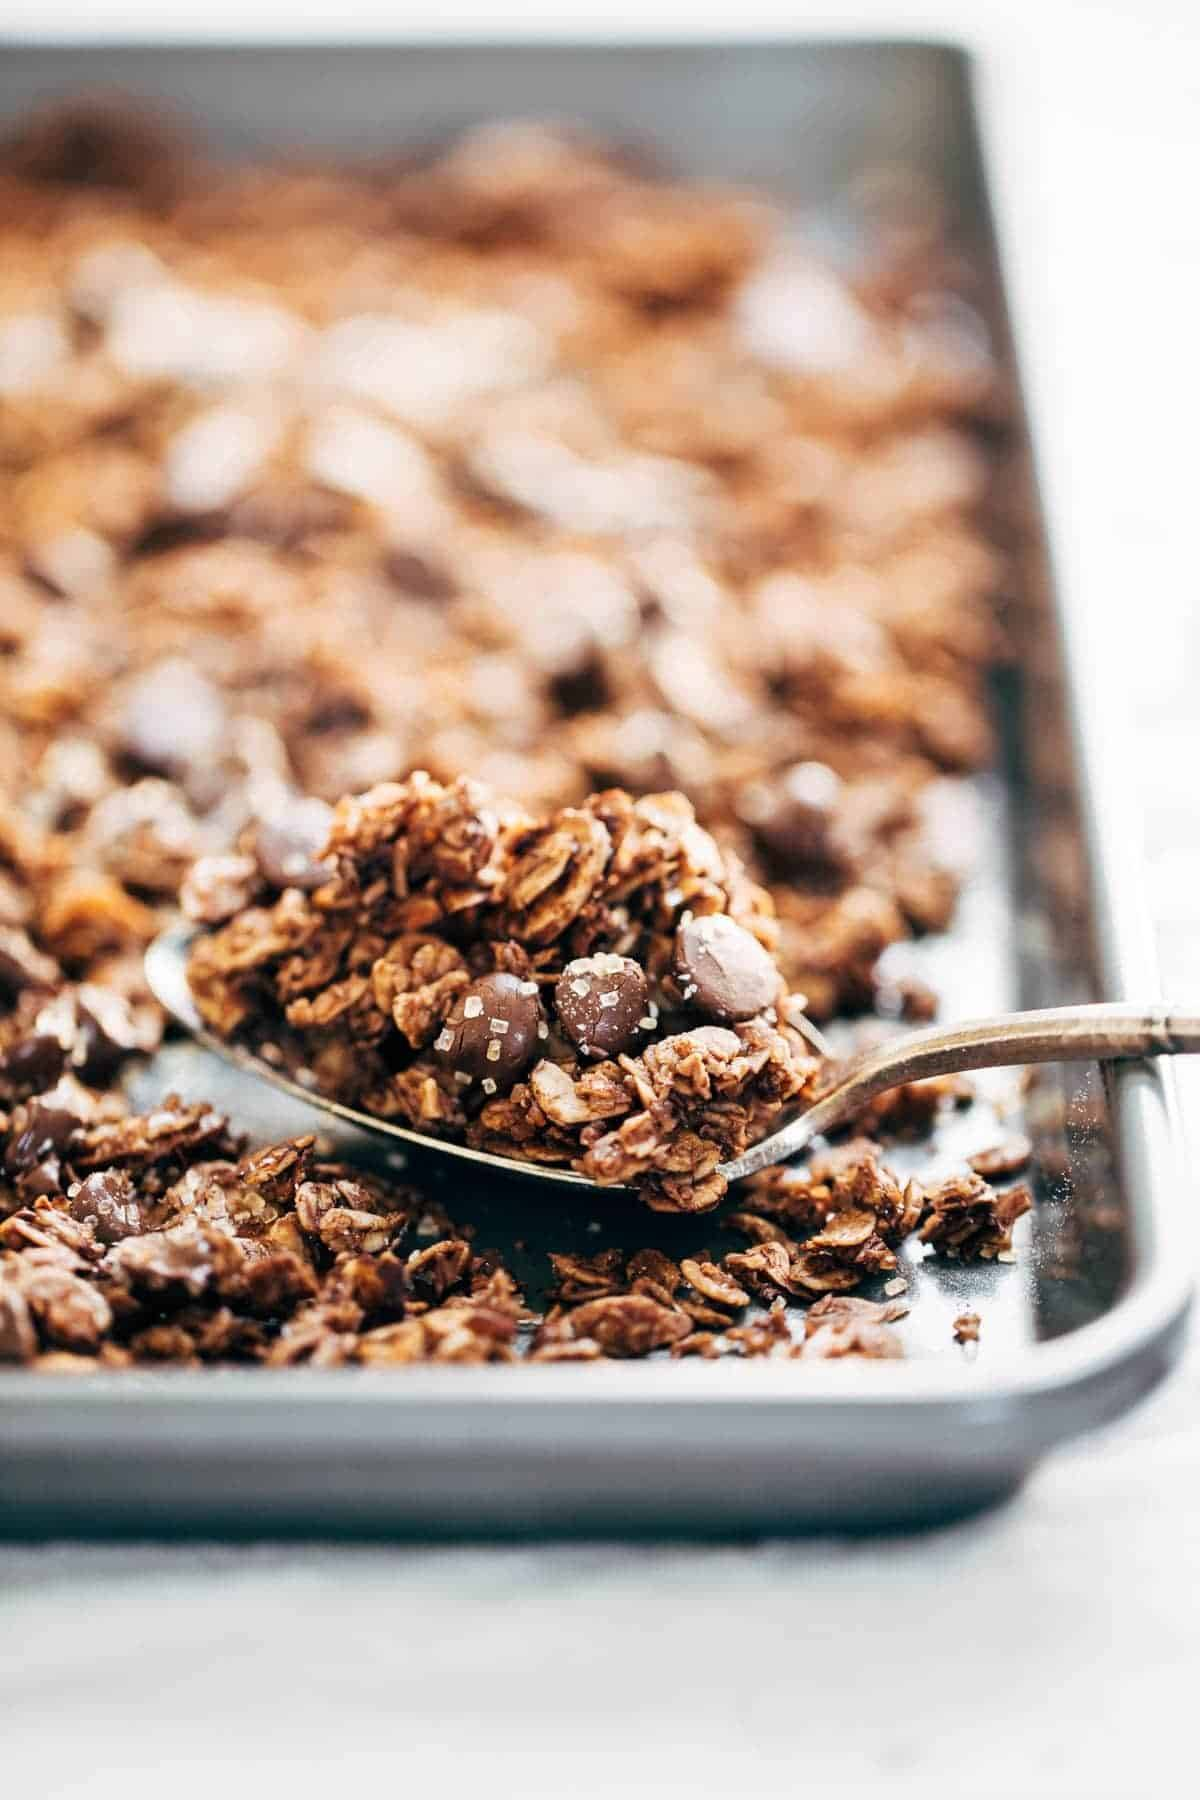 Chocolate Granola with almonds, oats, coconut flakes, chocolate chips, topped with crunchy sugar and sea salt on a pan and on a spoon.